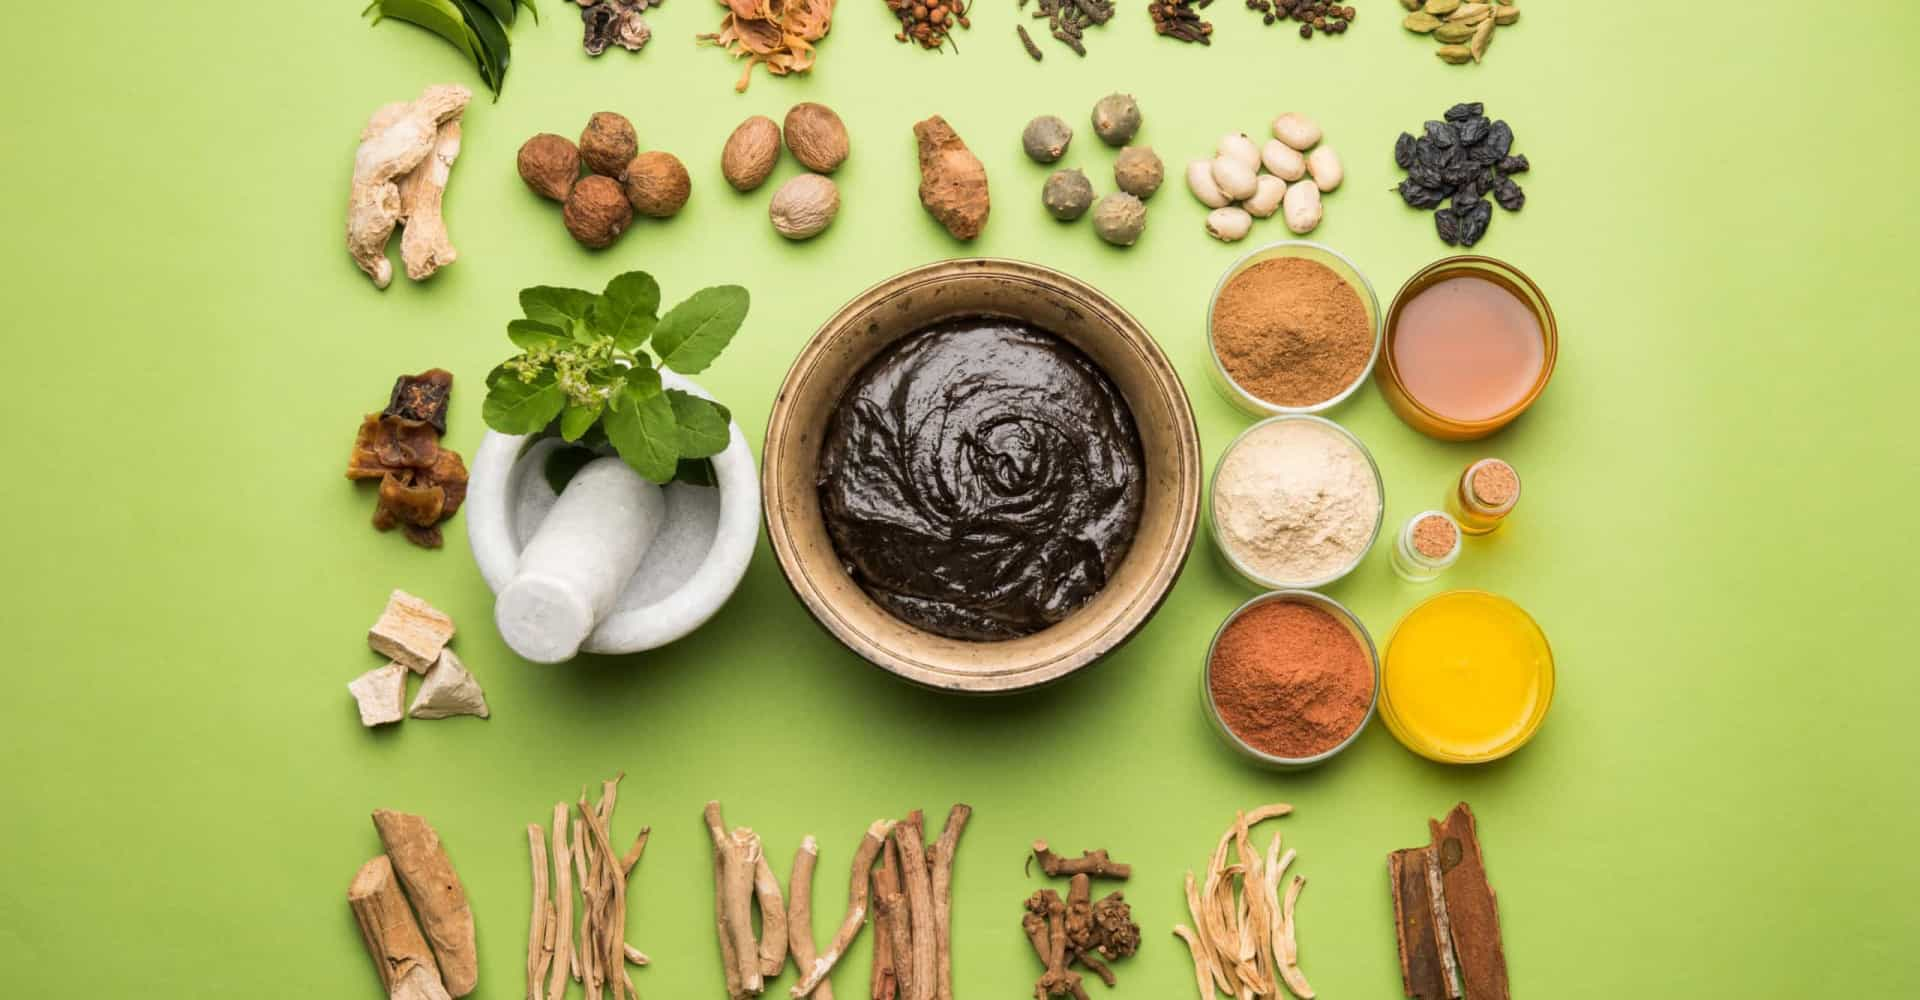 Ayurvedic diet: what you need to know about one of the hottest trends